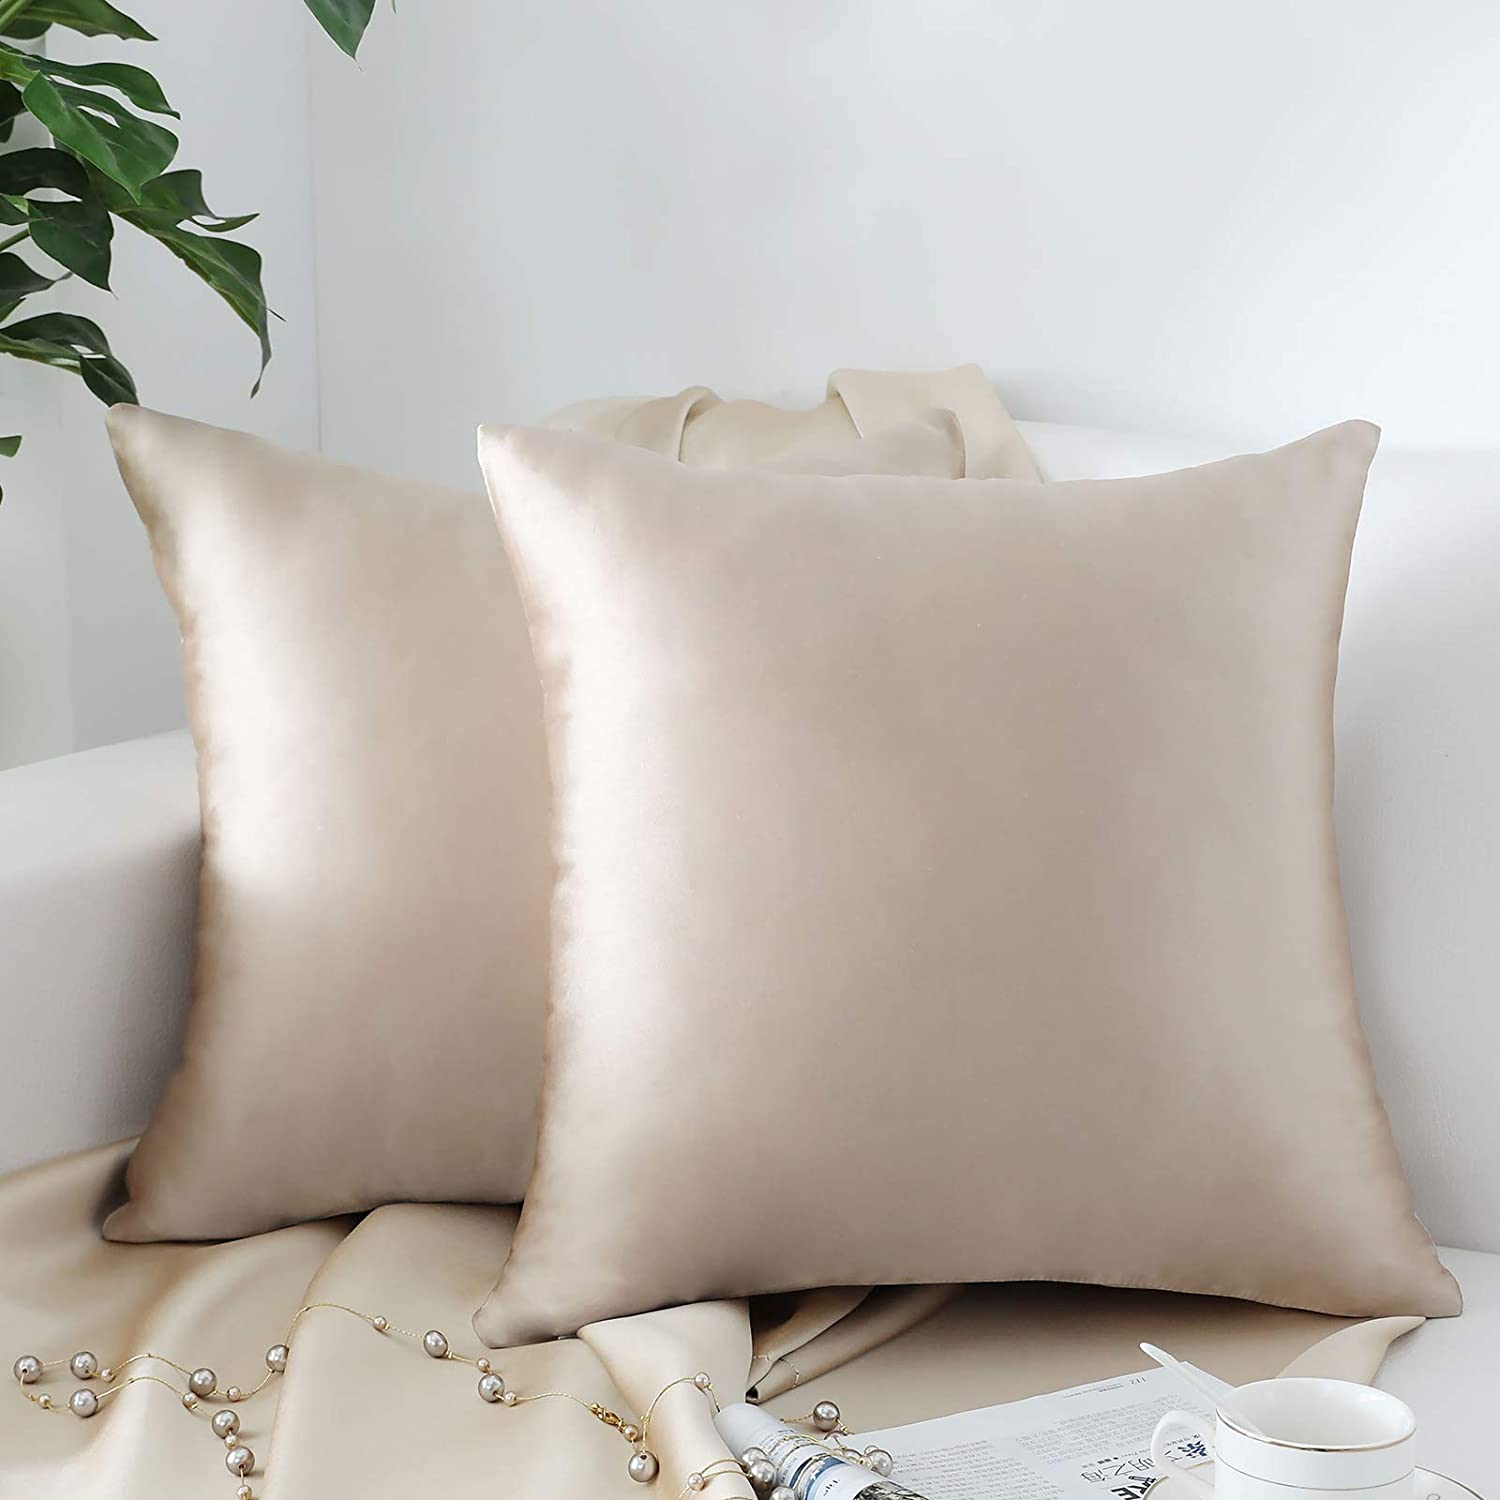 QOPOYU Pack Super sale period limited of 2 Decorative Faux Cheap bargain Set Sl Pillow Silk Throw Covers